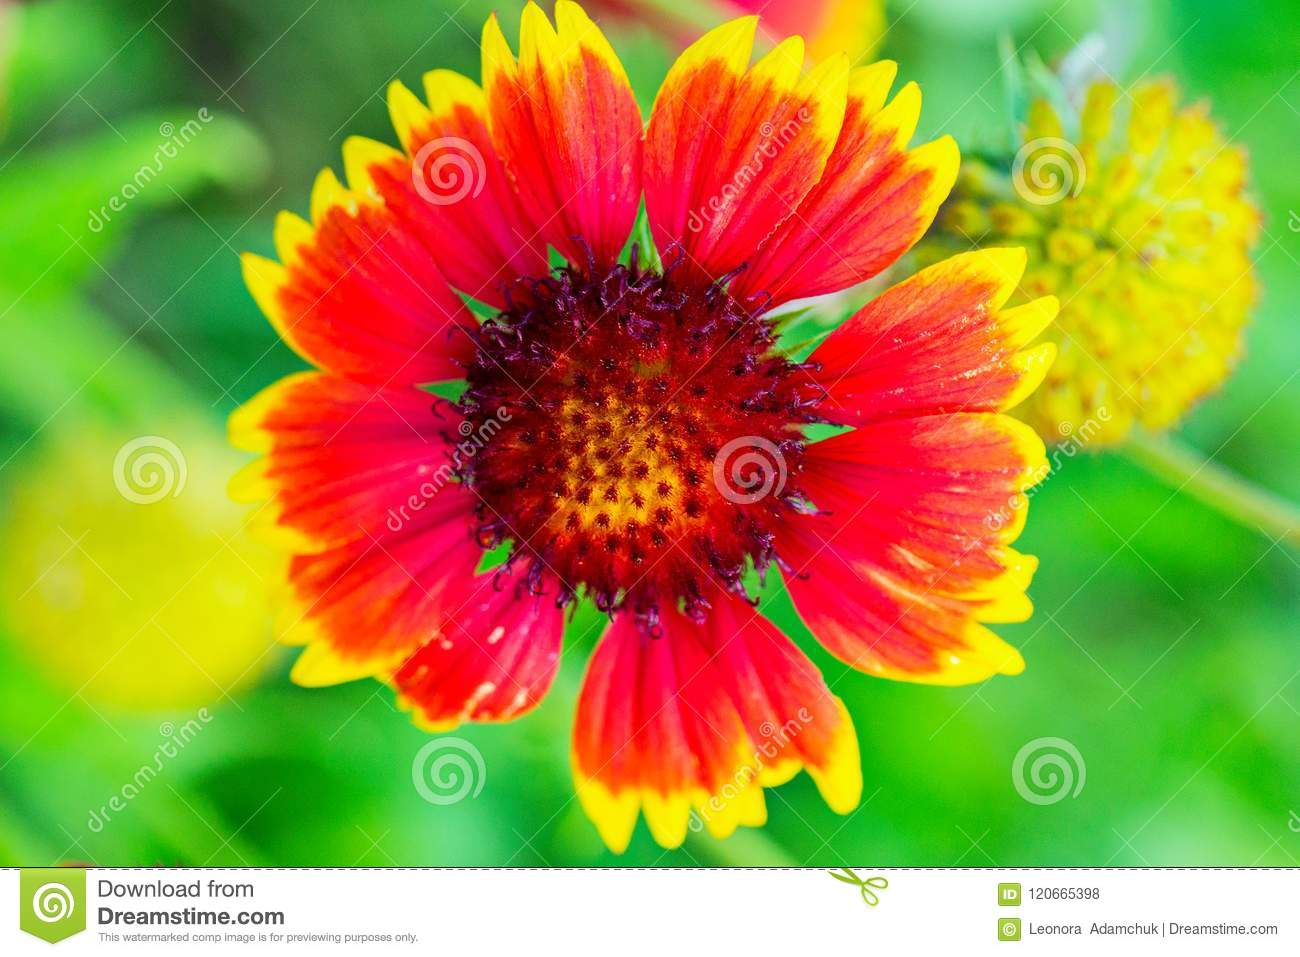 Beautiful flower with red petals and yellow tips photographed close download beautiful flower with red petals and yellow tips photographed close up stock photo mightylinksfo